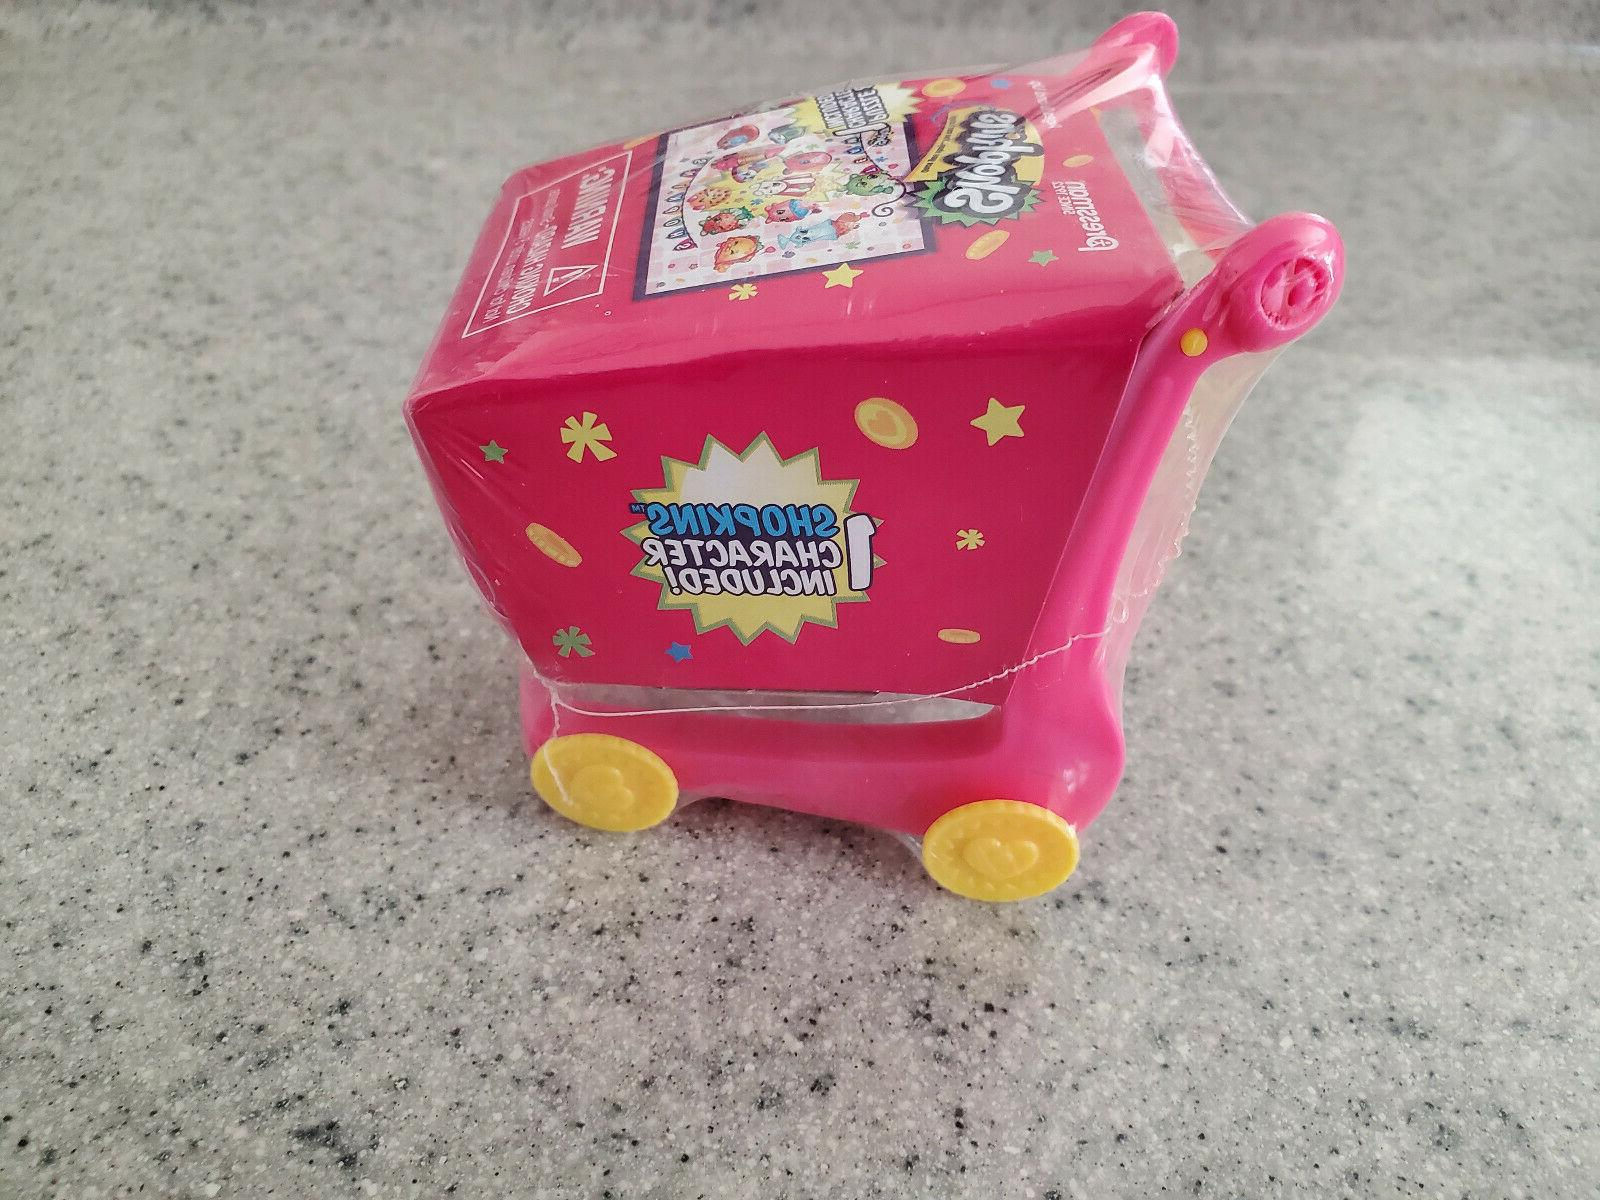 NEW Shopkins Shopping Cart and 1 Shopkin Figure